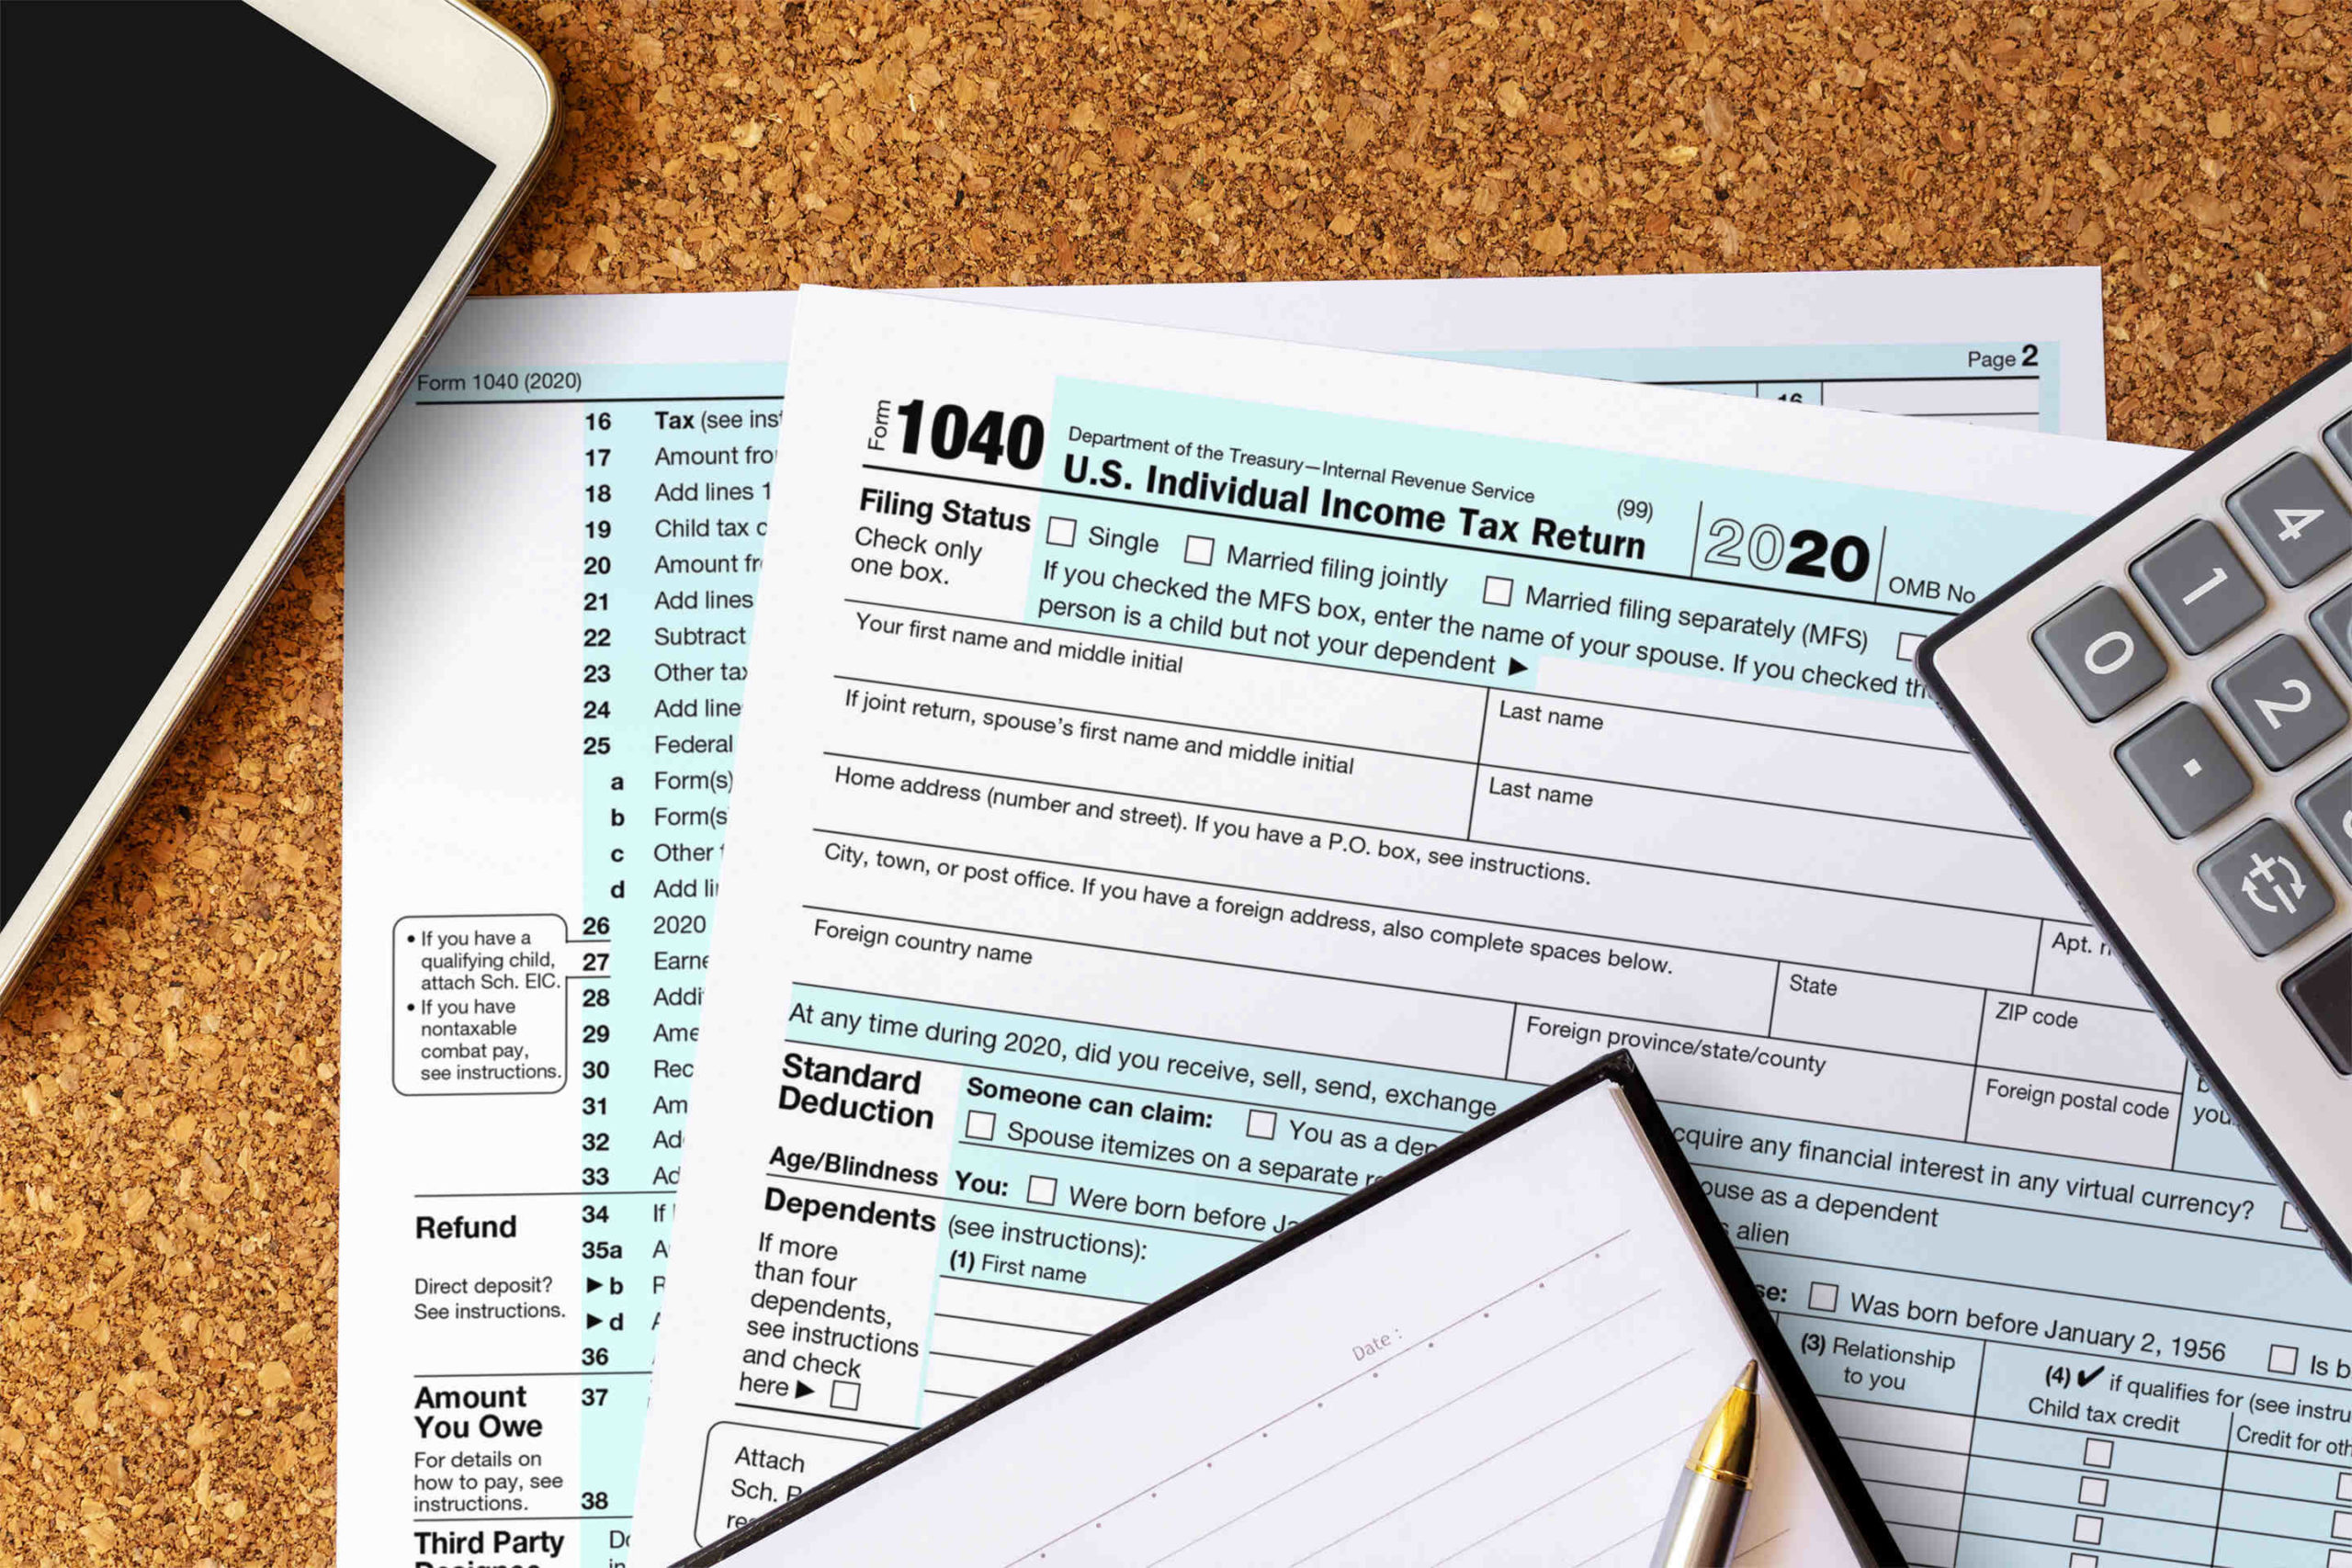 What is the tax deadline for 2021?